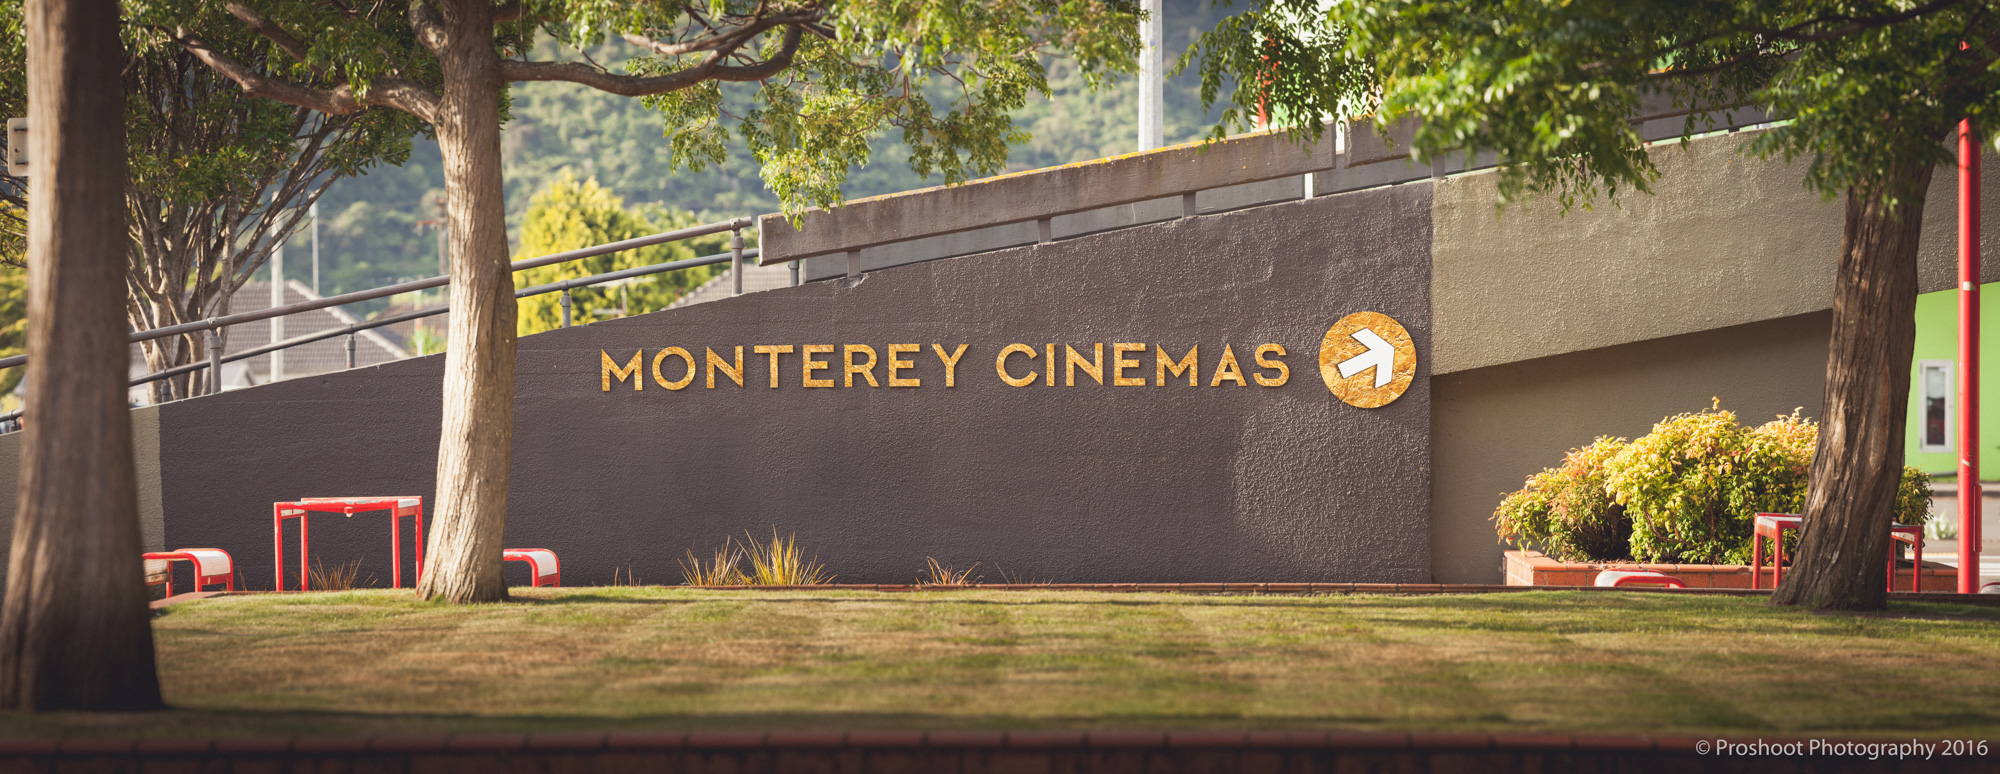 Monteray Cinemas